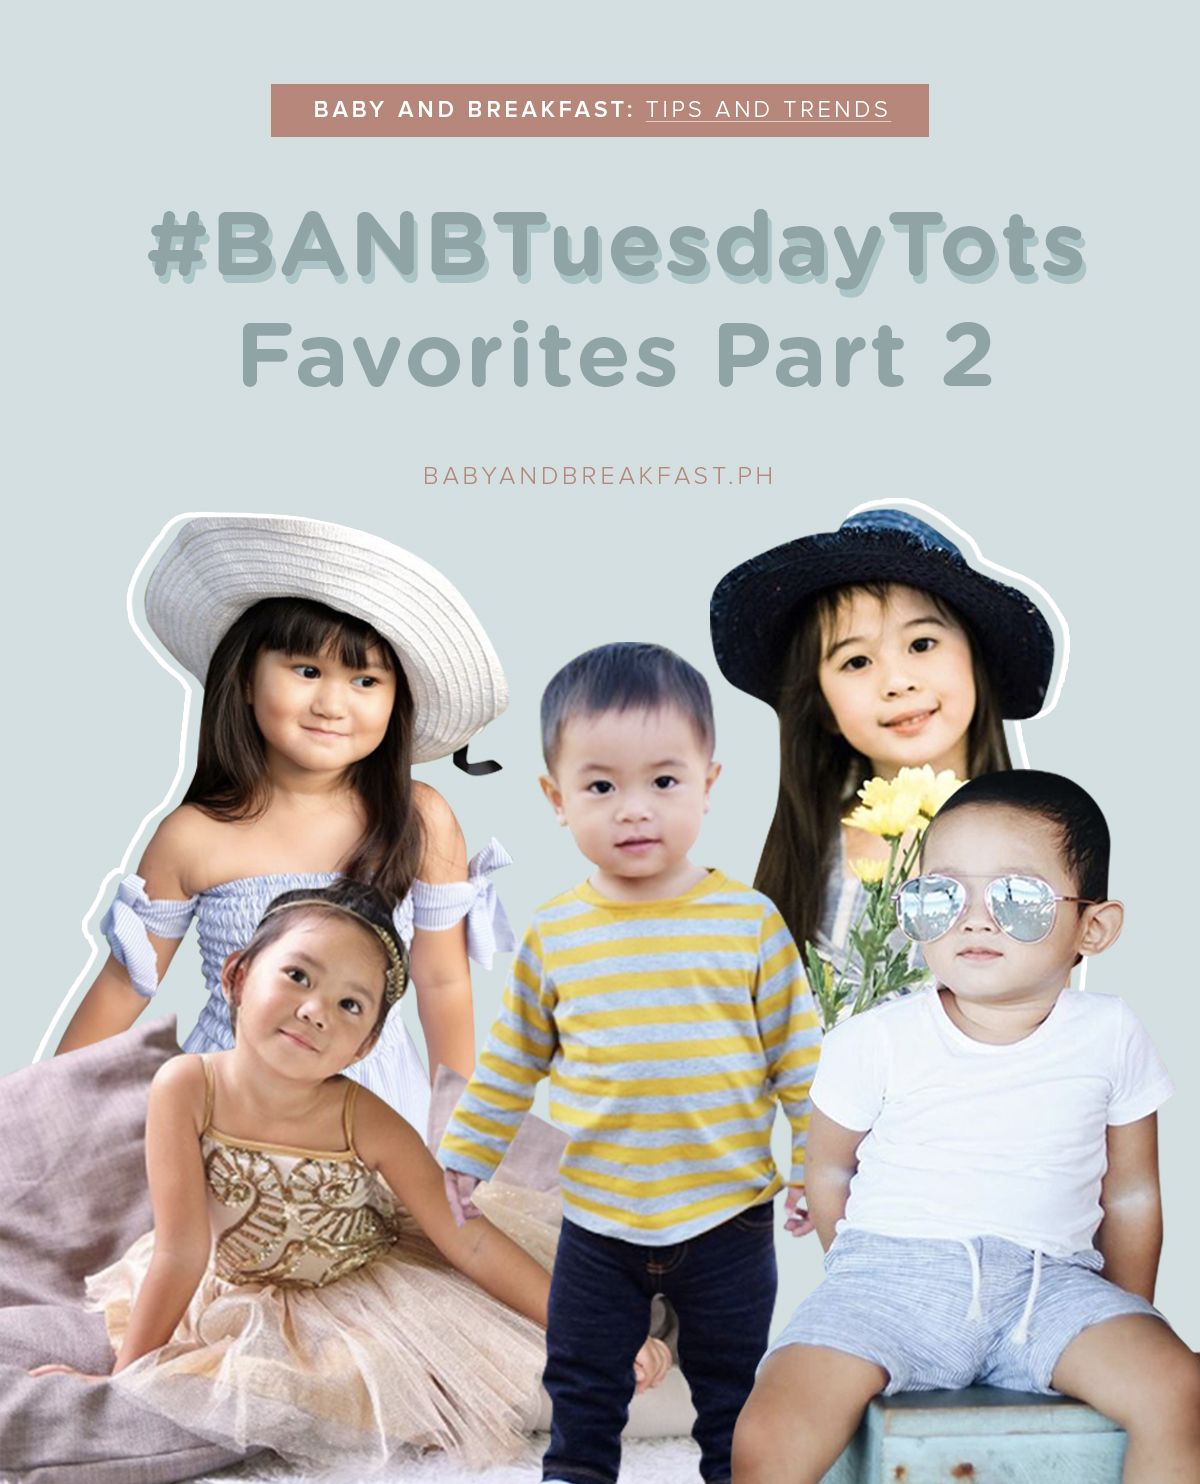 Baby and Breakfast: Tips and Trends #BANBTuesdayTots Favorites Part 2